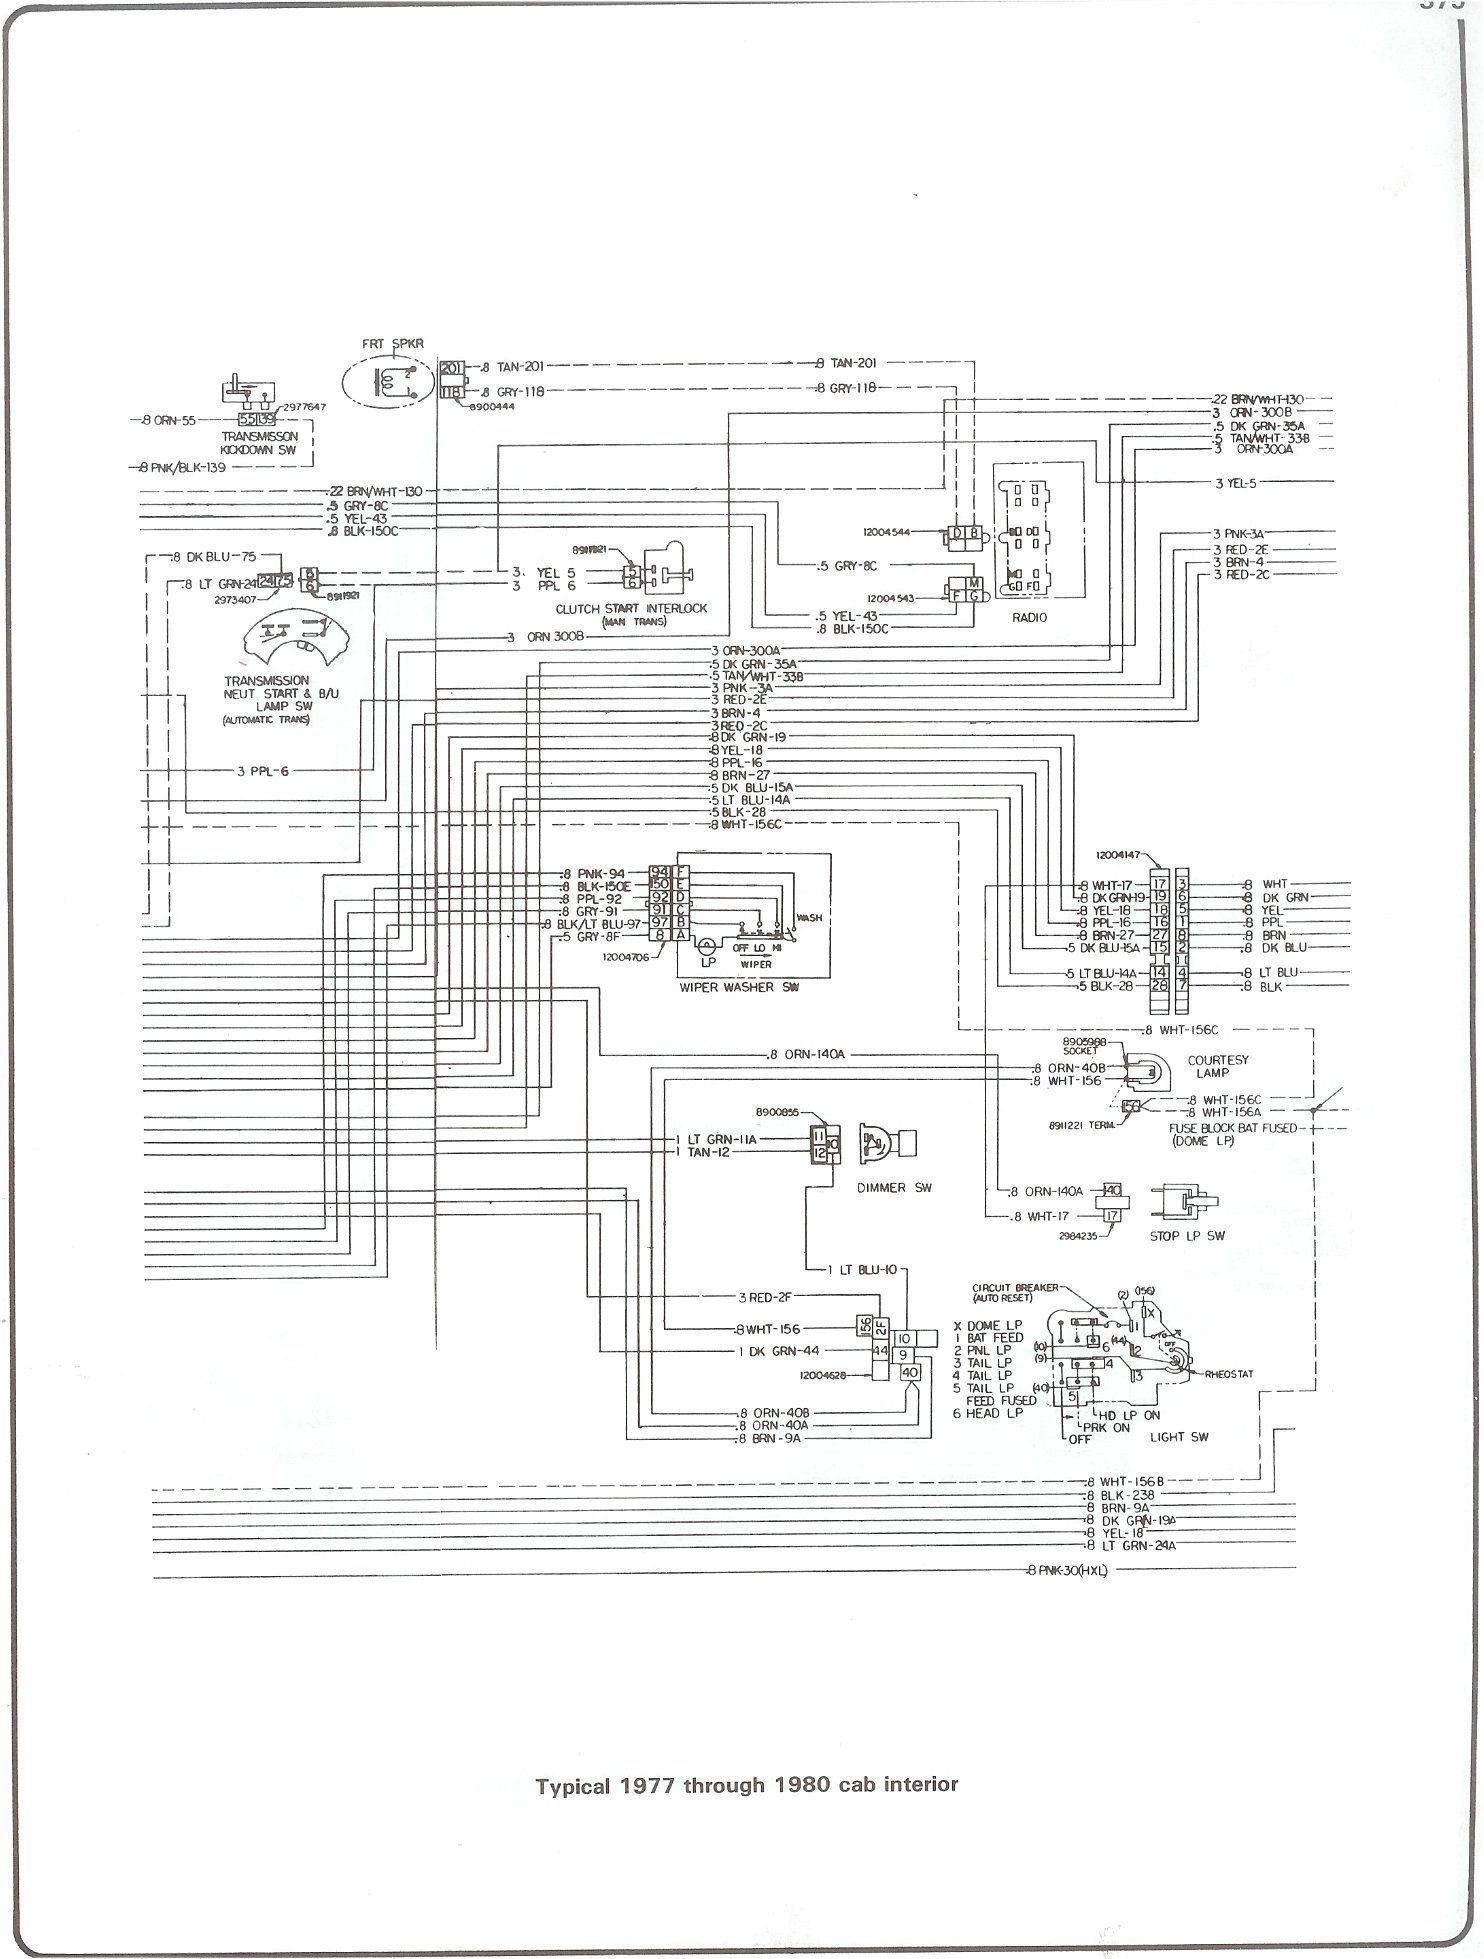 Complete 73 87 Wiring Diagrams Panel From Chevy Tail Light Diagram Lights Fuse To 1975 77 80 Cab Interior